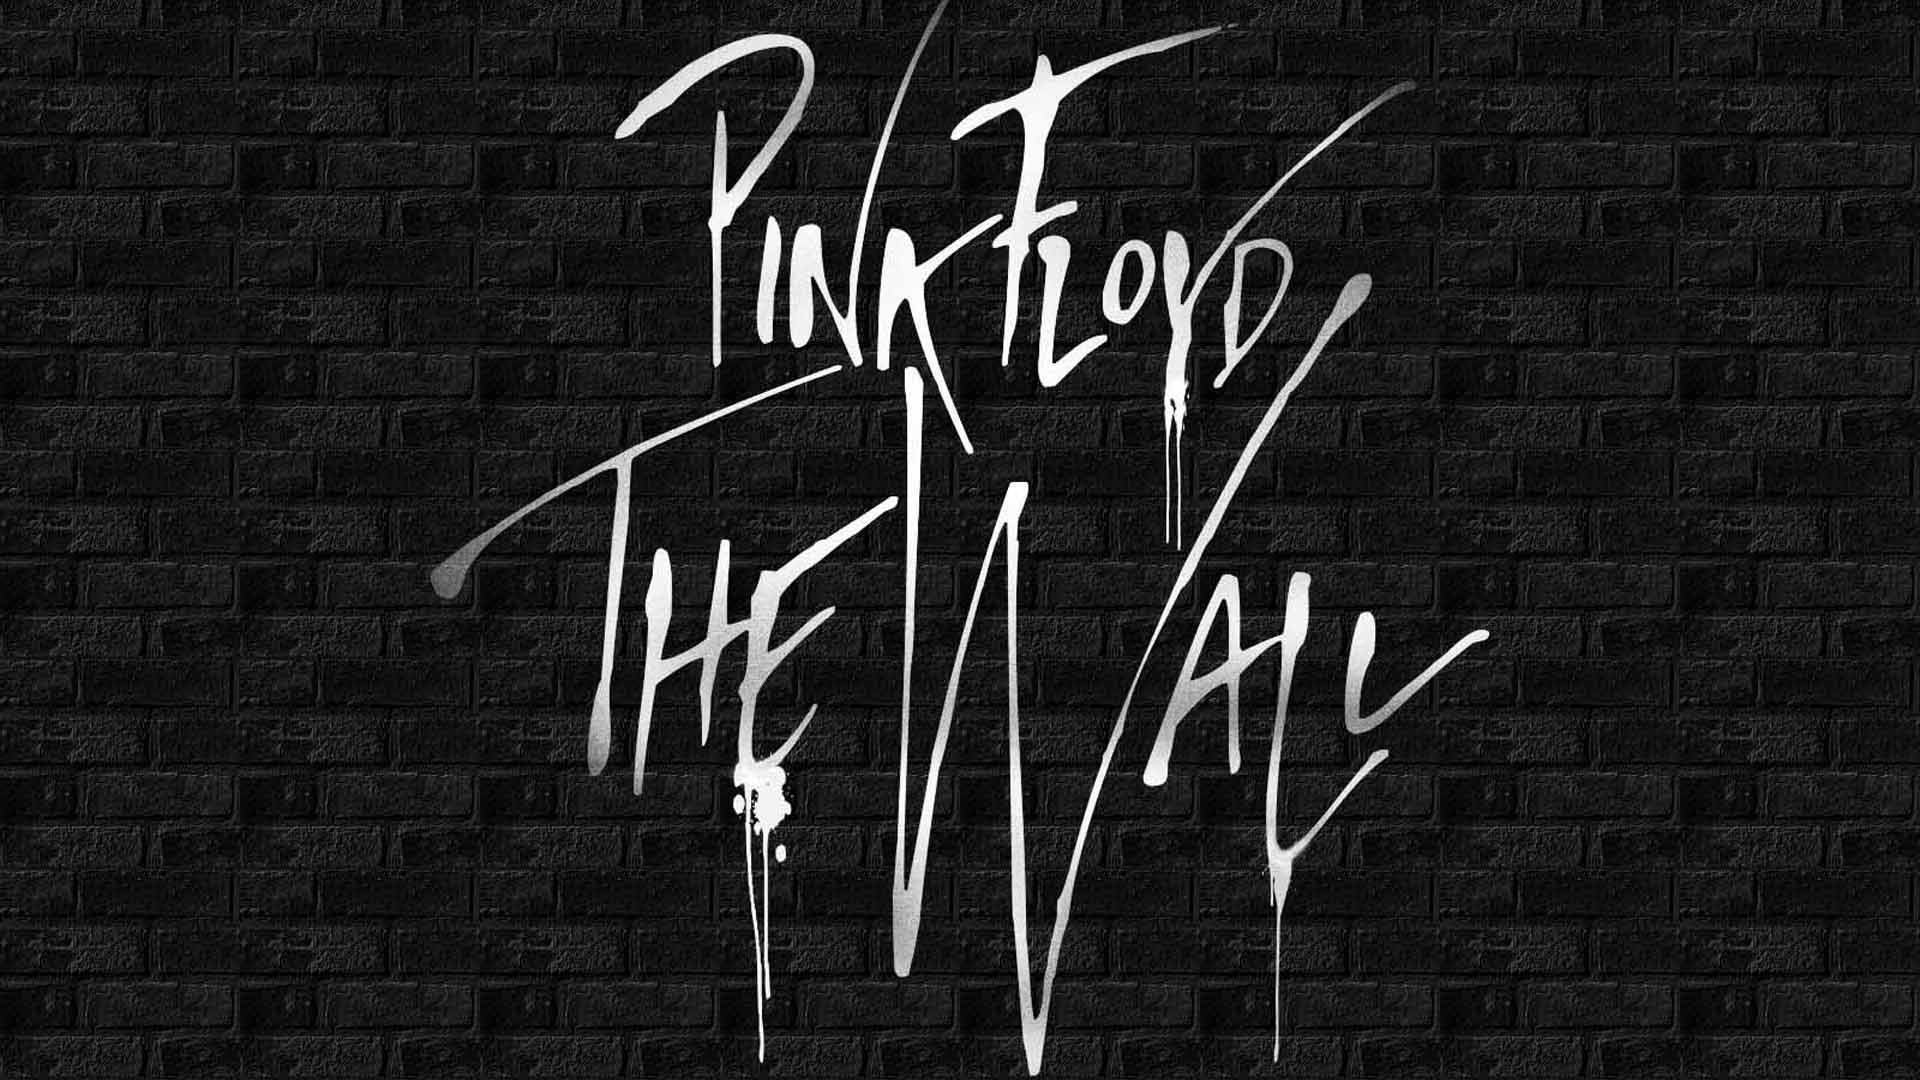 Pink Floyd The Wall Alternative Full HD Wallpaper 1920x1080